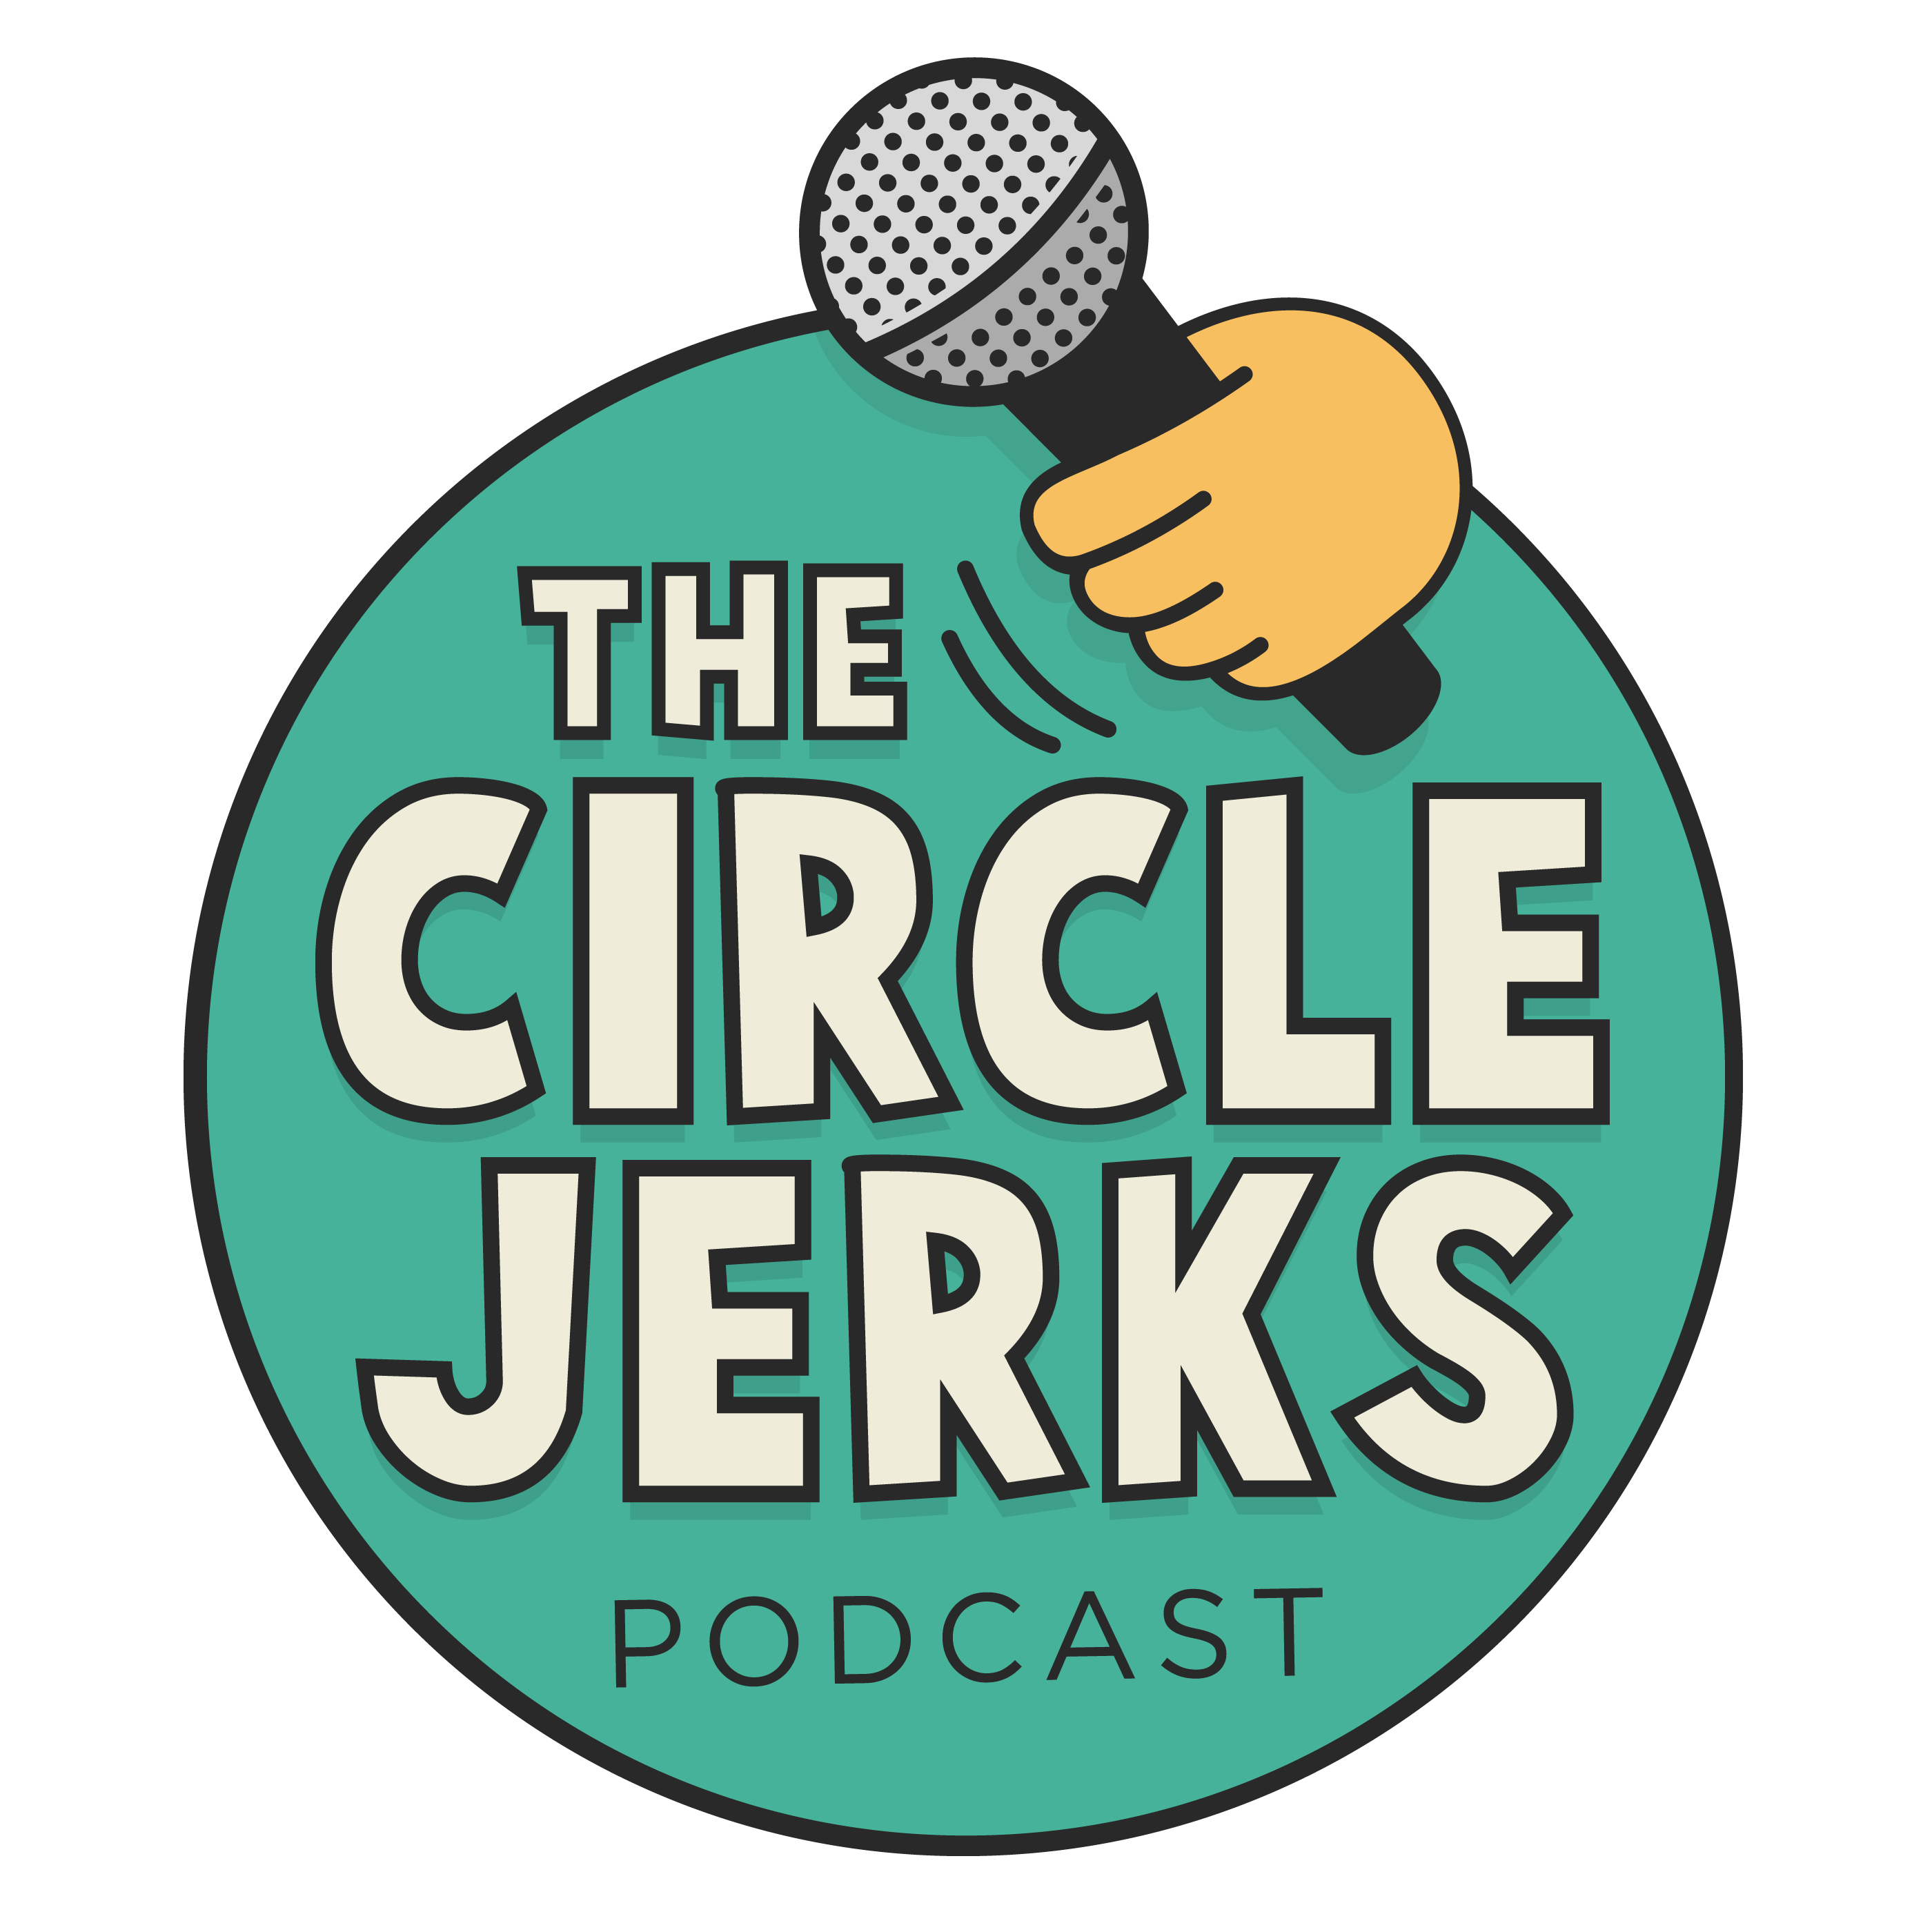 The Circle Jerks Podcast